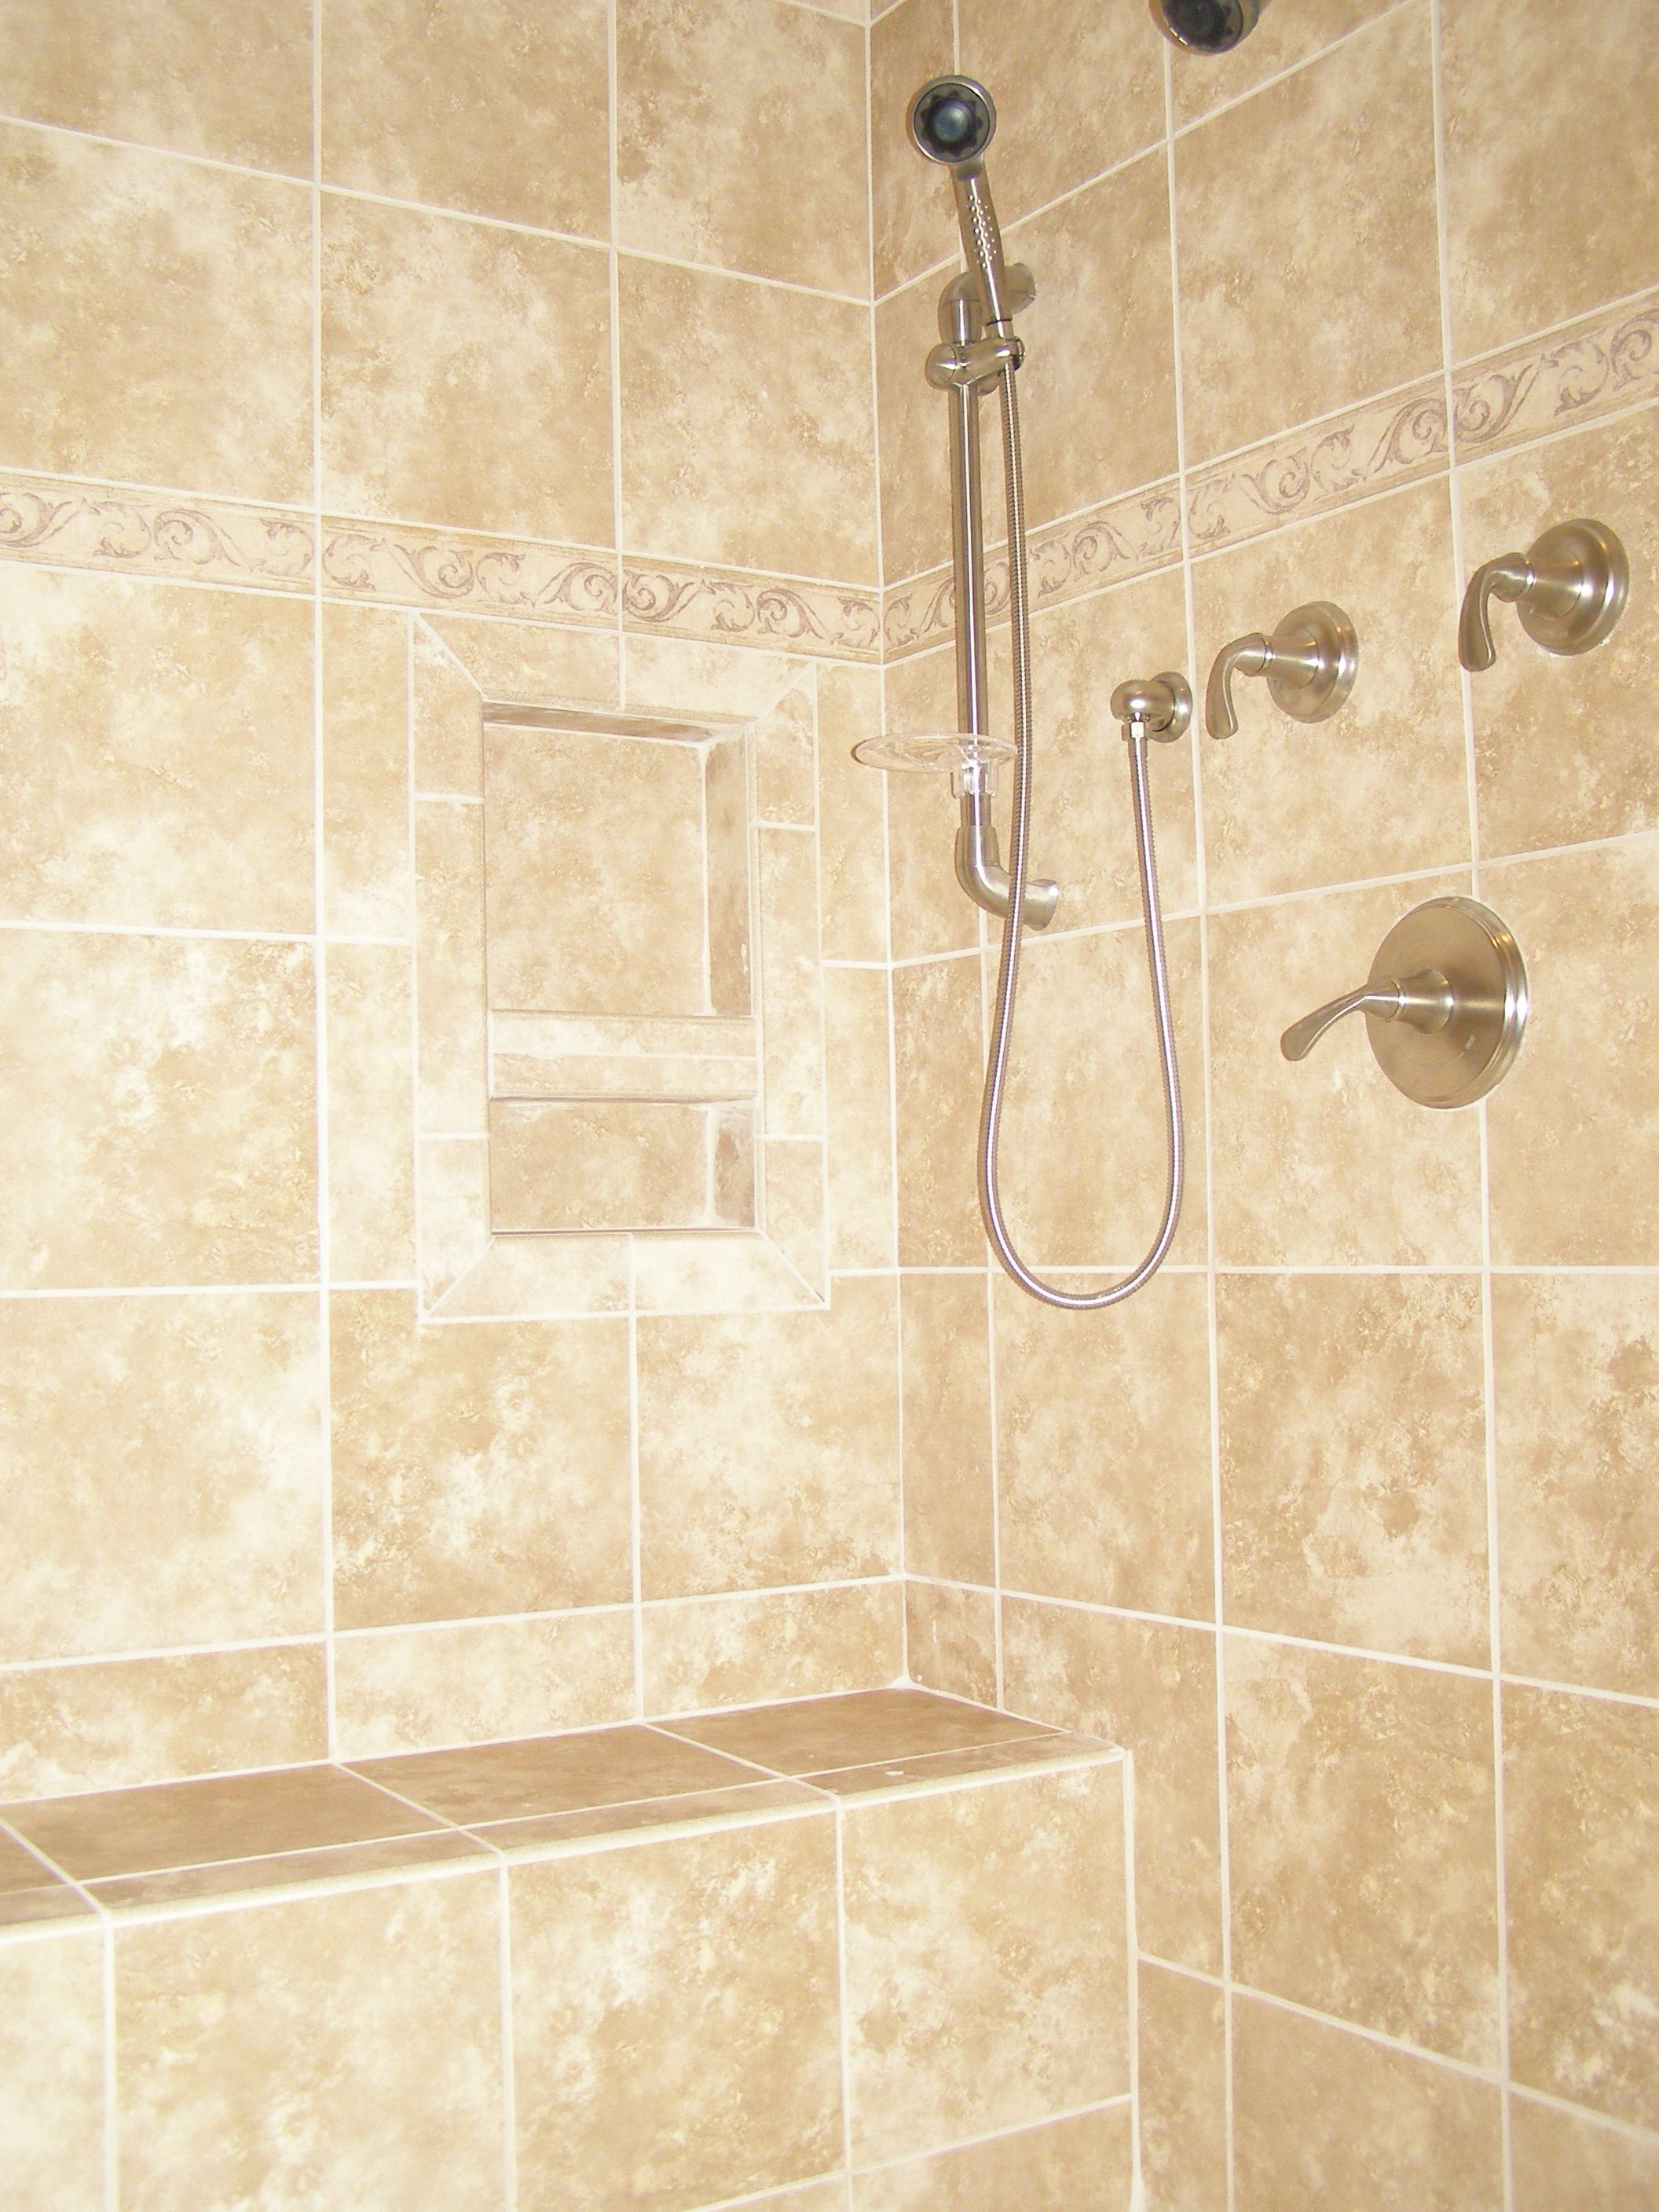 Ceramic Tile Showers Without Doors Ceramic Tile Shower Bench Seat Ideas For The House